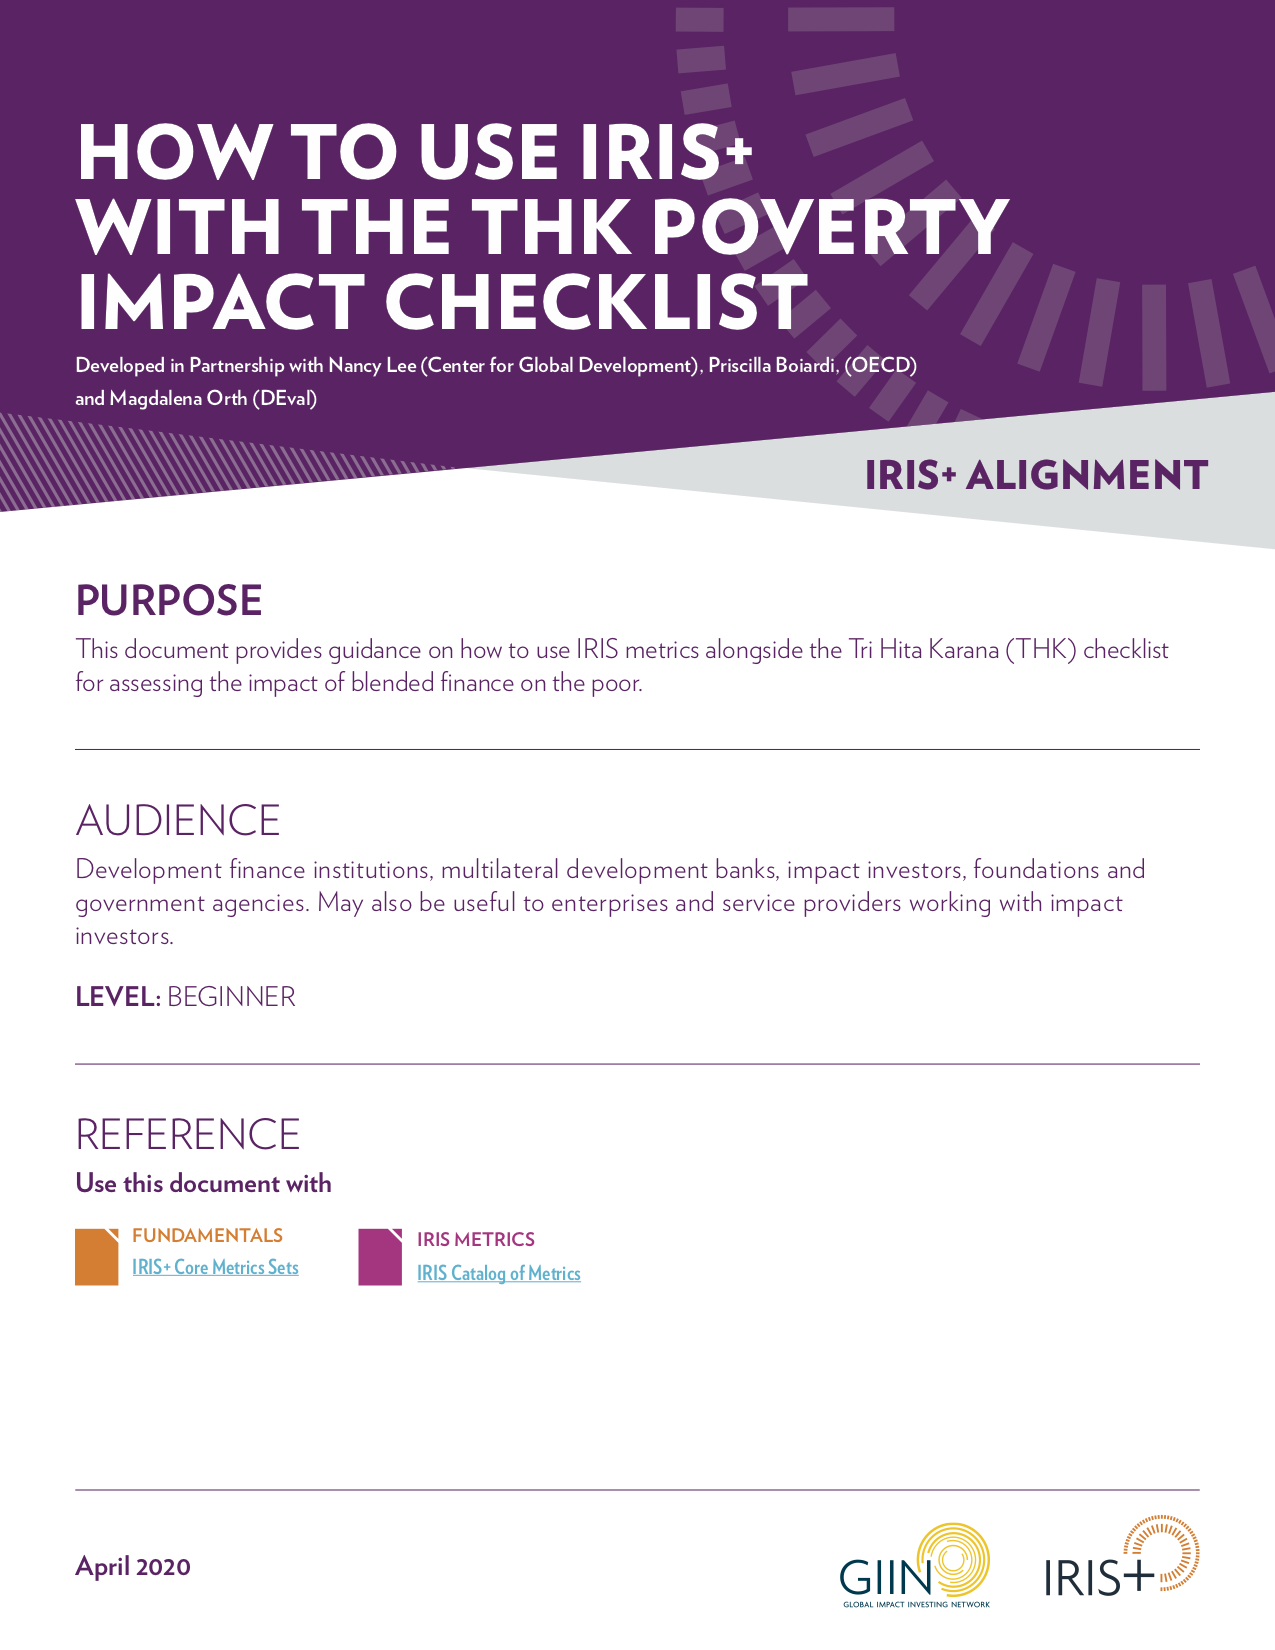 IRIS+ and the THK Poverty Impact Checklist